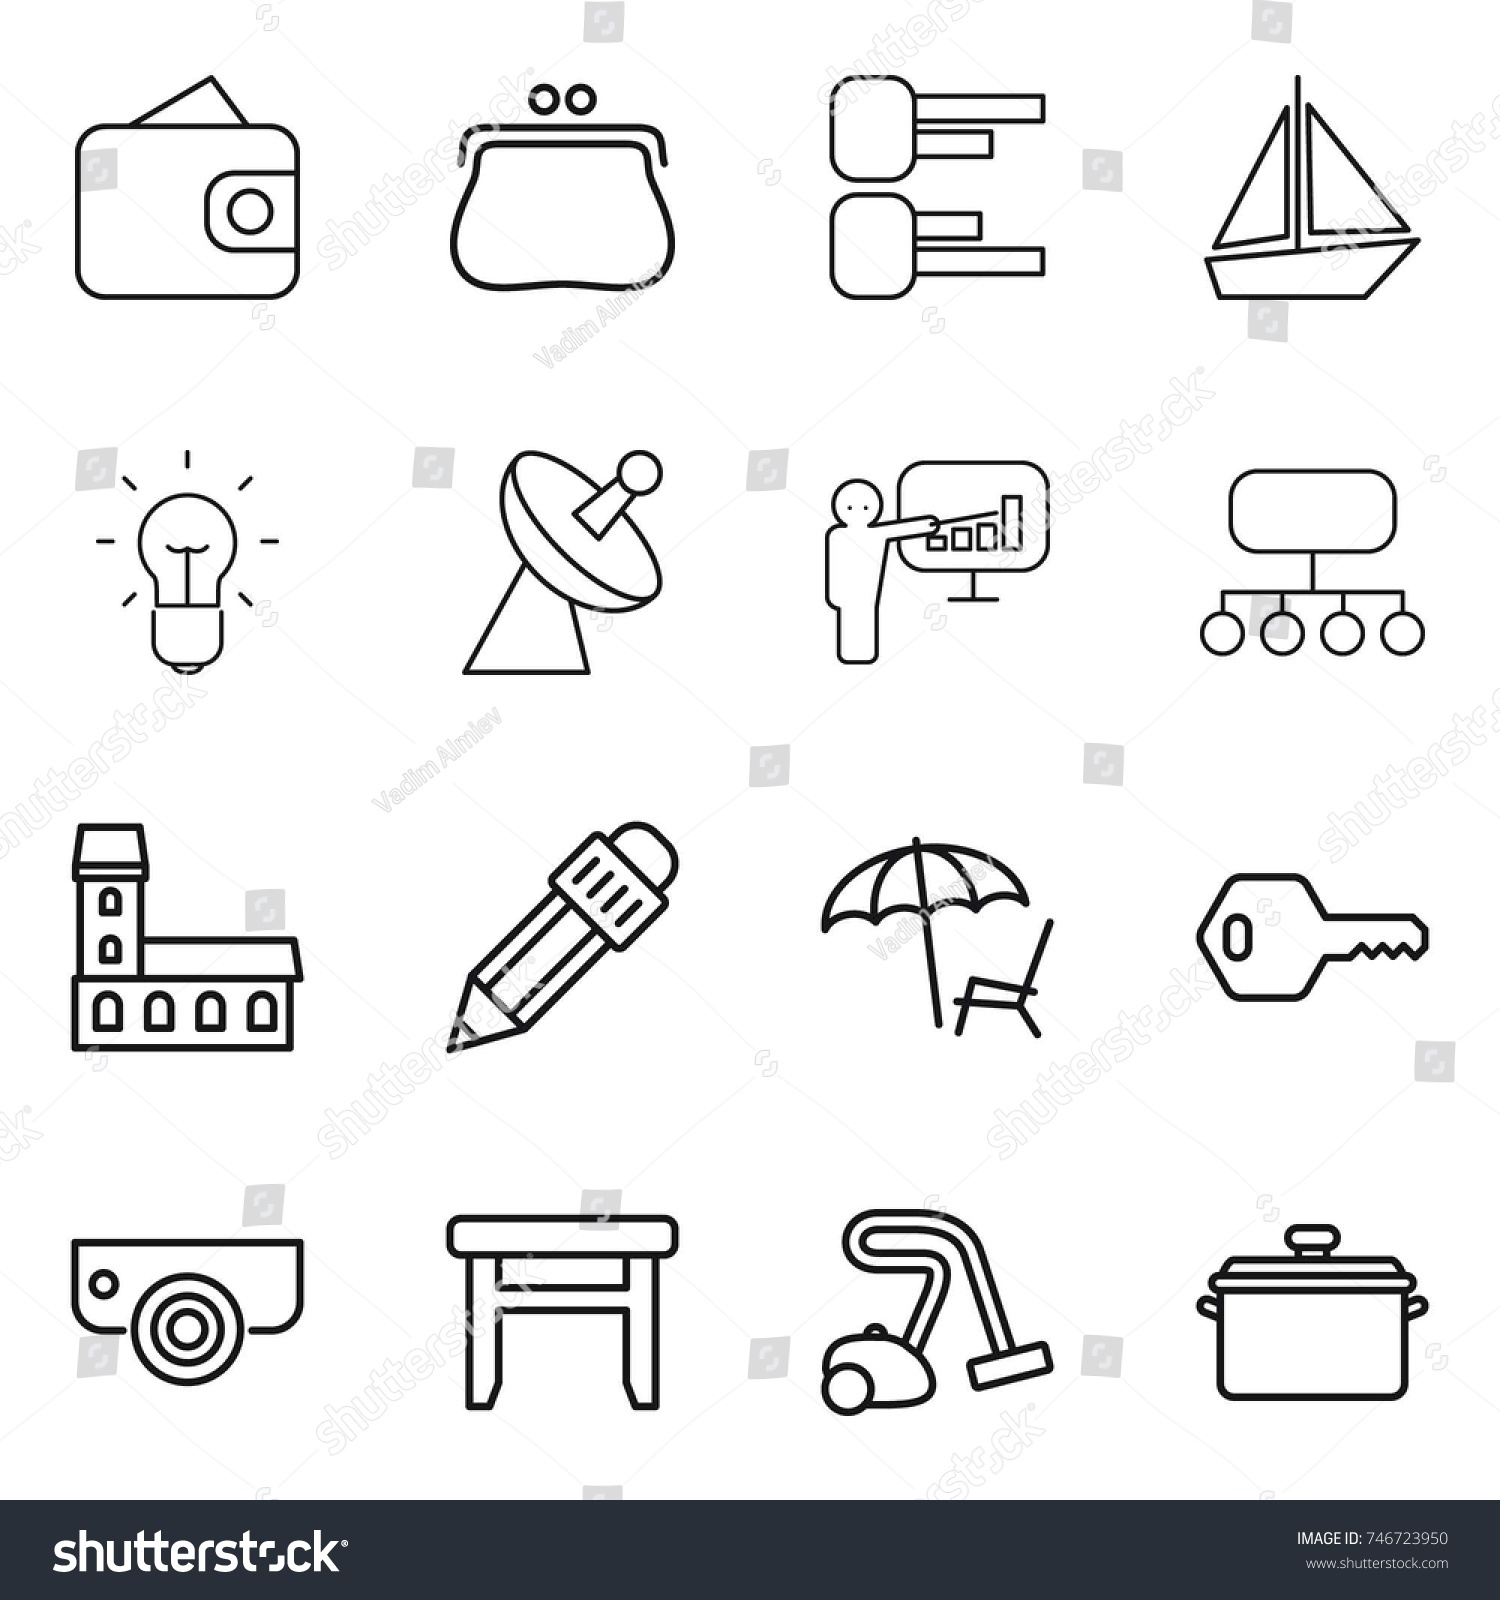 hight resolution of thin line icon set wallet purse diagram boat bulb satellite